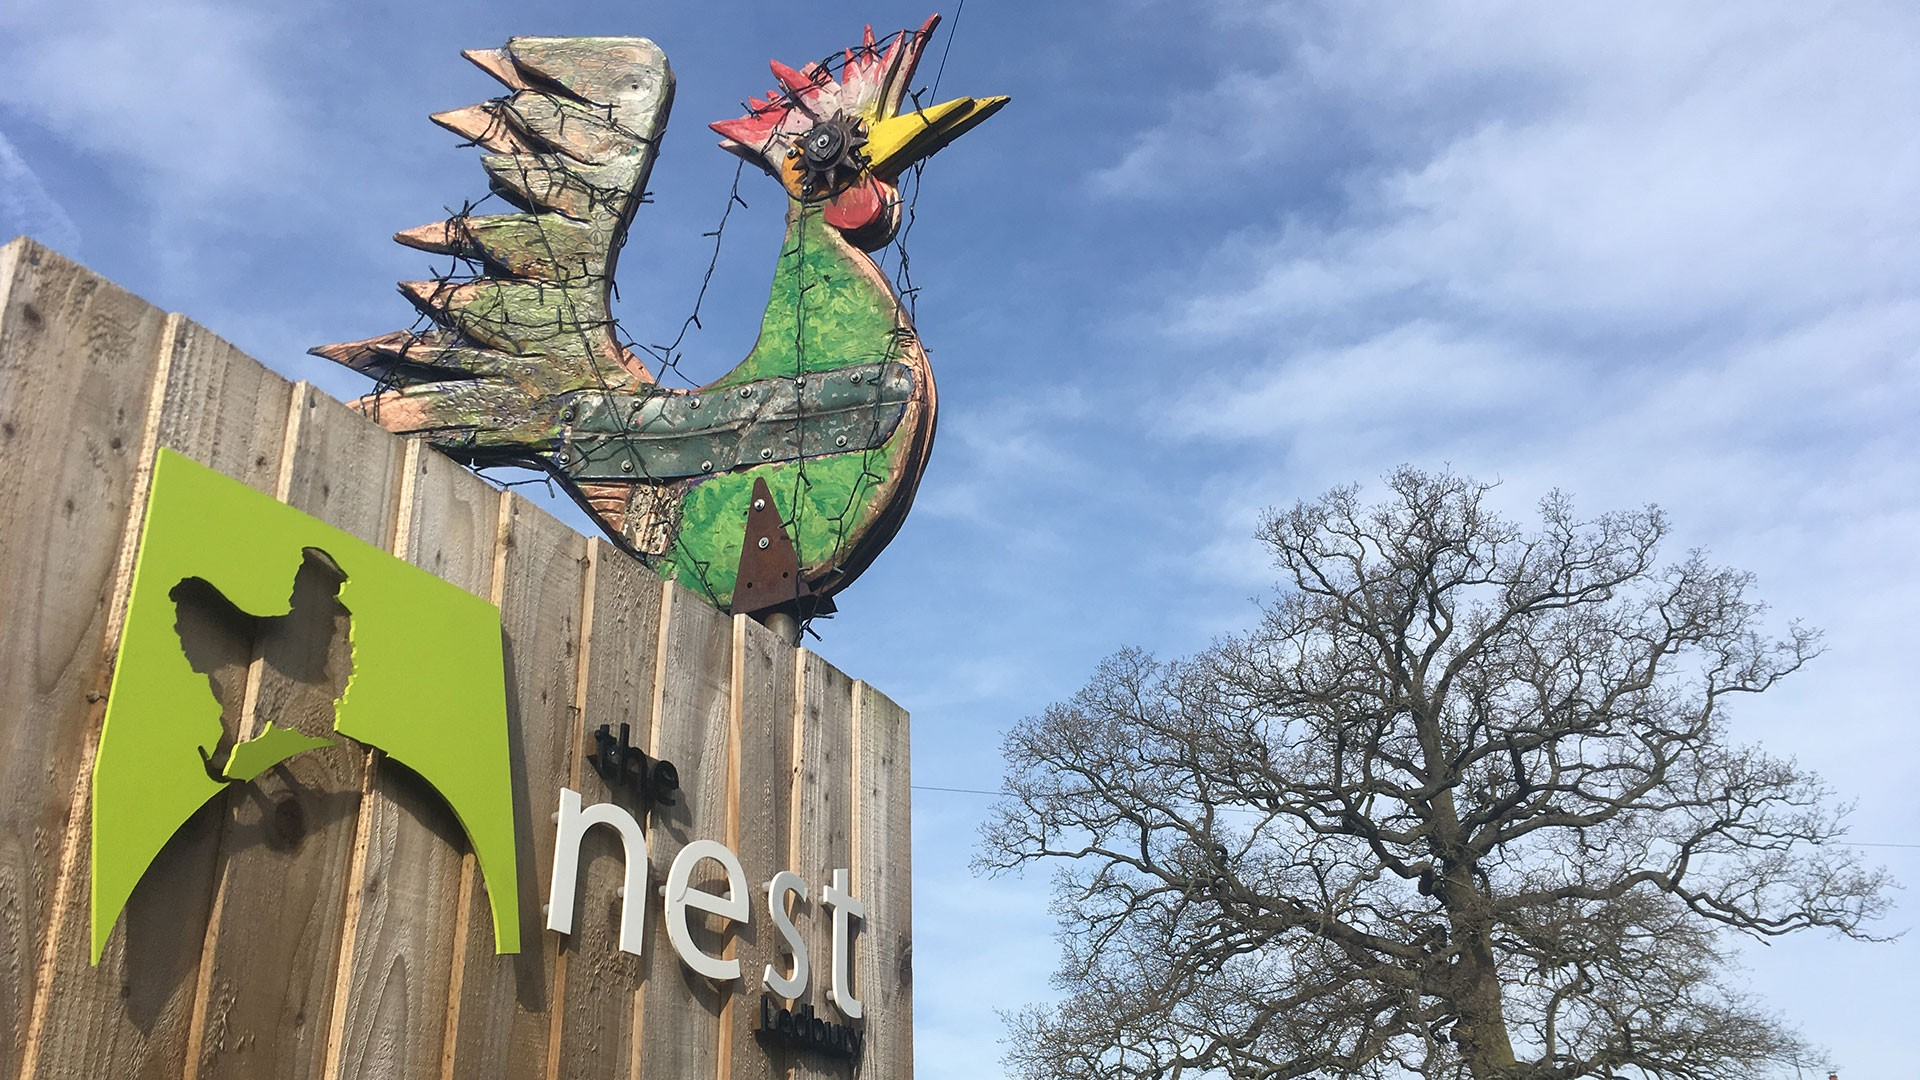 The Nest, Herefordshire